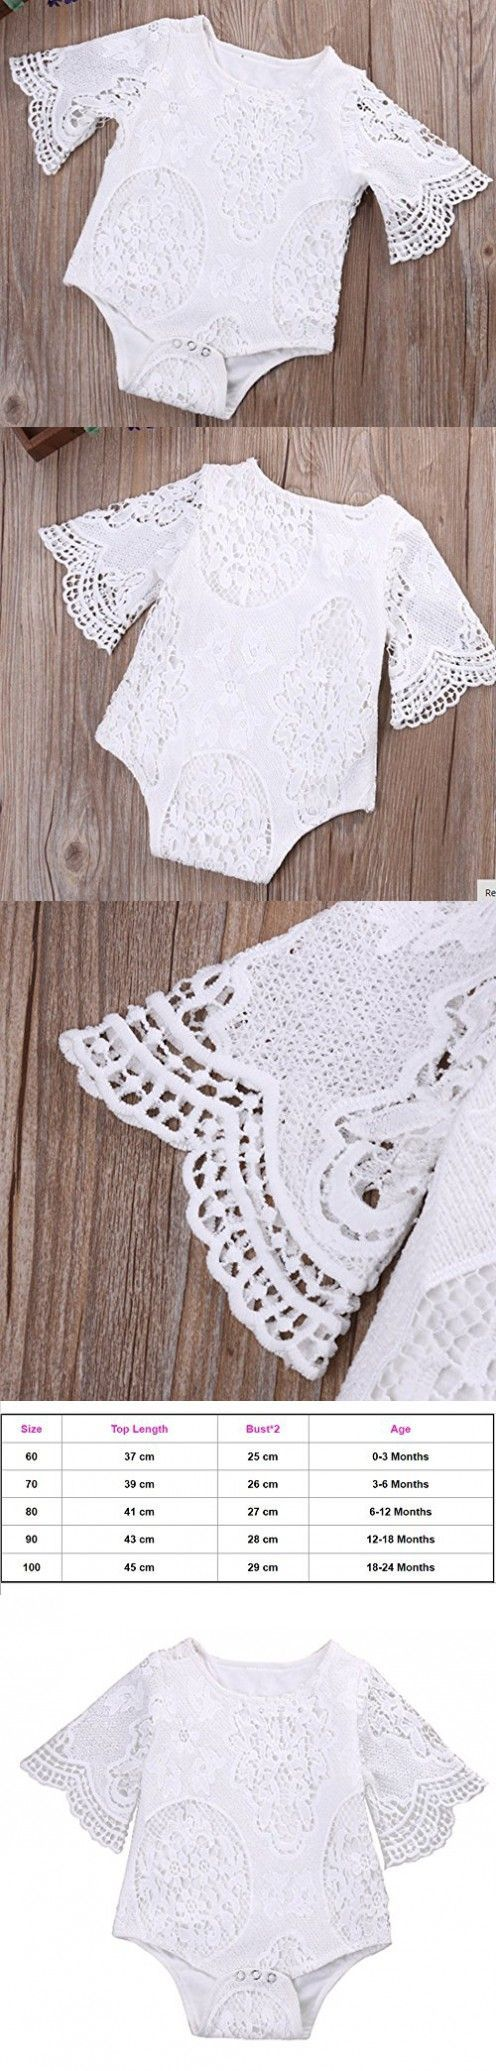 CUTEBABY Infant Baby Girl Summer Hollow Lace Romper Bodysuit One-pieces Jumpsuit